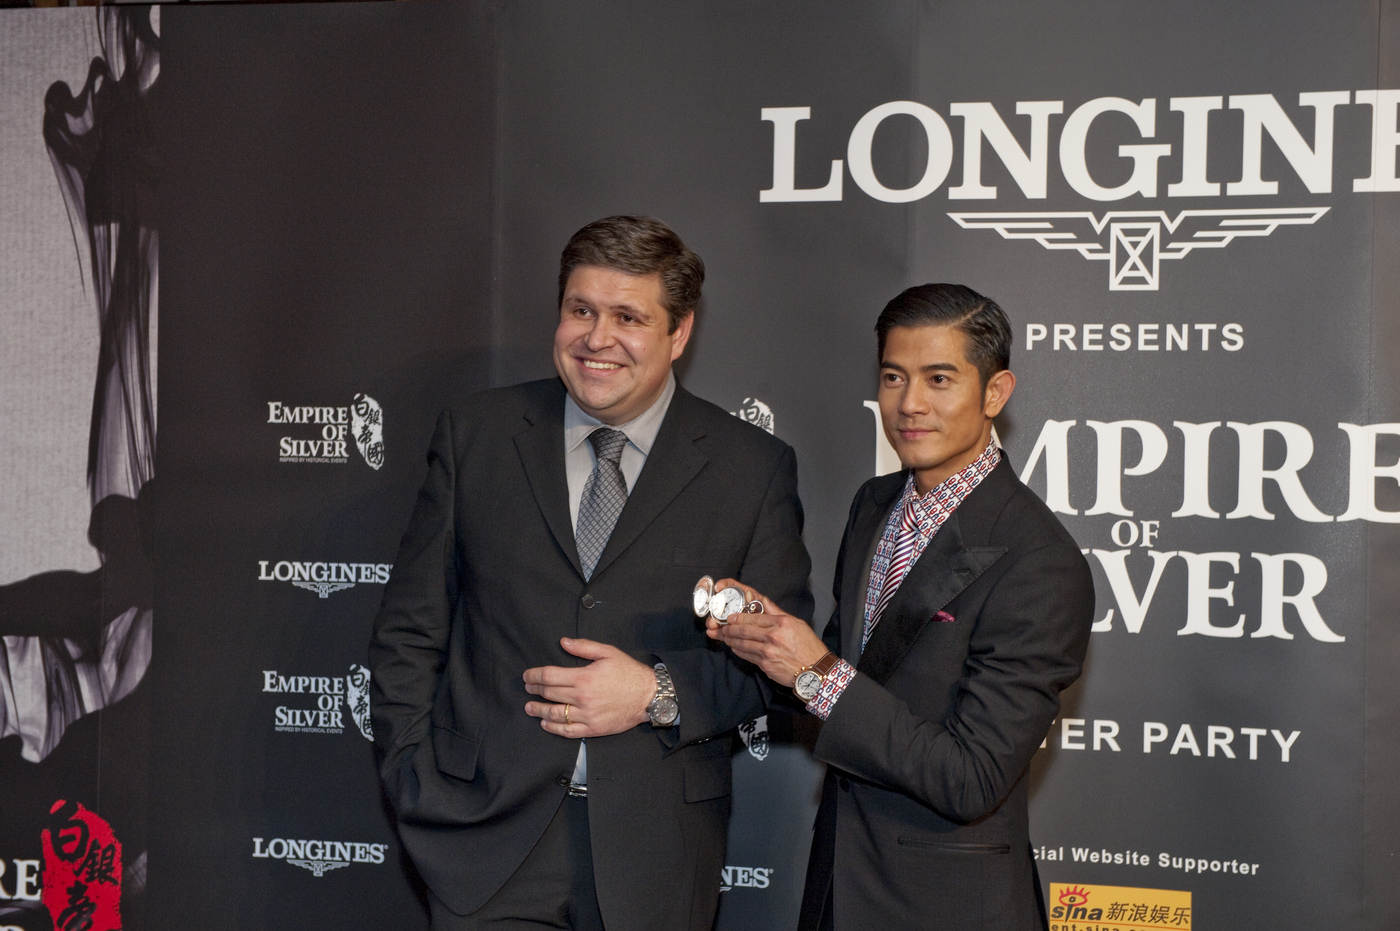 Longines Corporate Event: Longines presents Empire of Silver, starring Ambassador of Elegance, Aaron Kwok 2